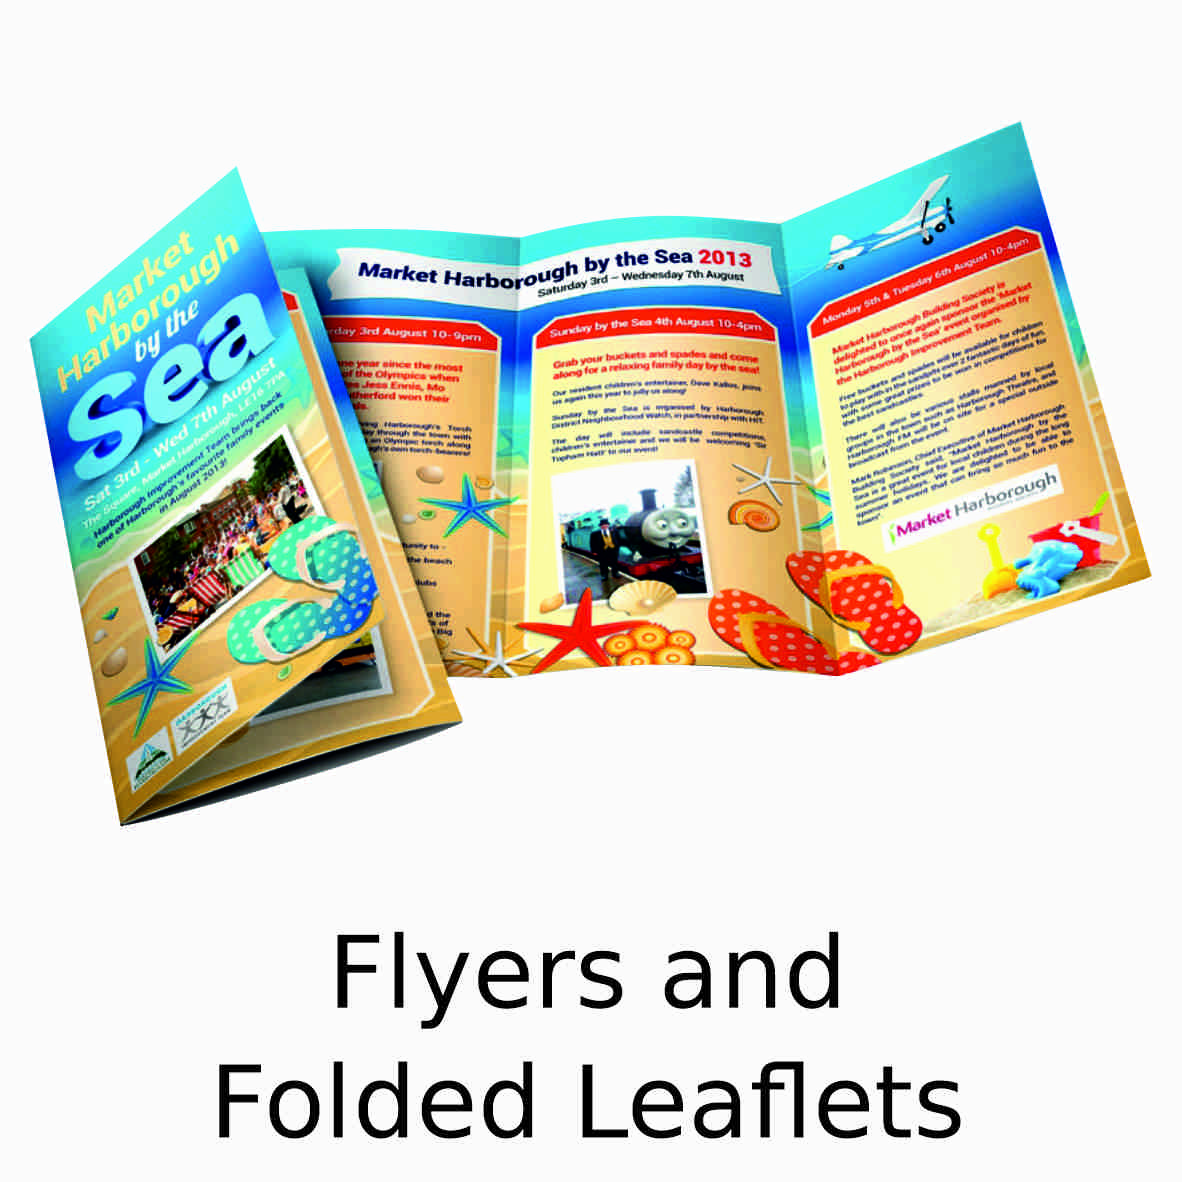 Flyers & Folded Leaflets